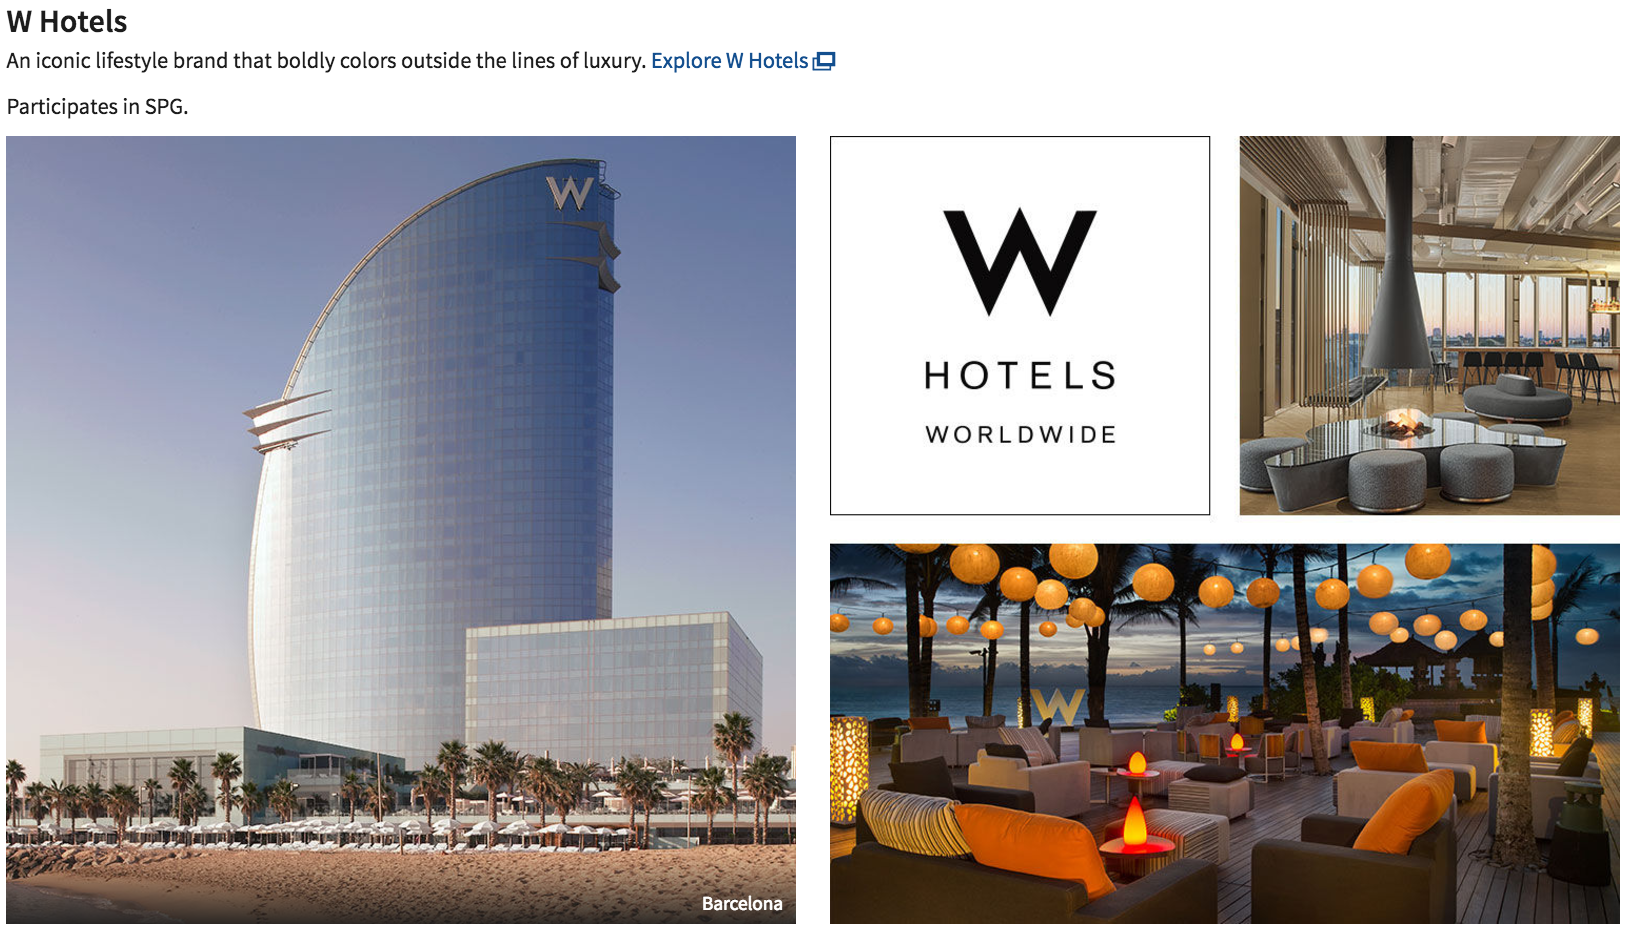 W Hotels are a Marriott luxury brand.